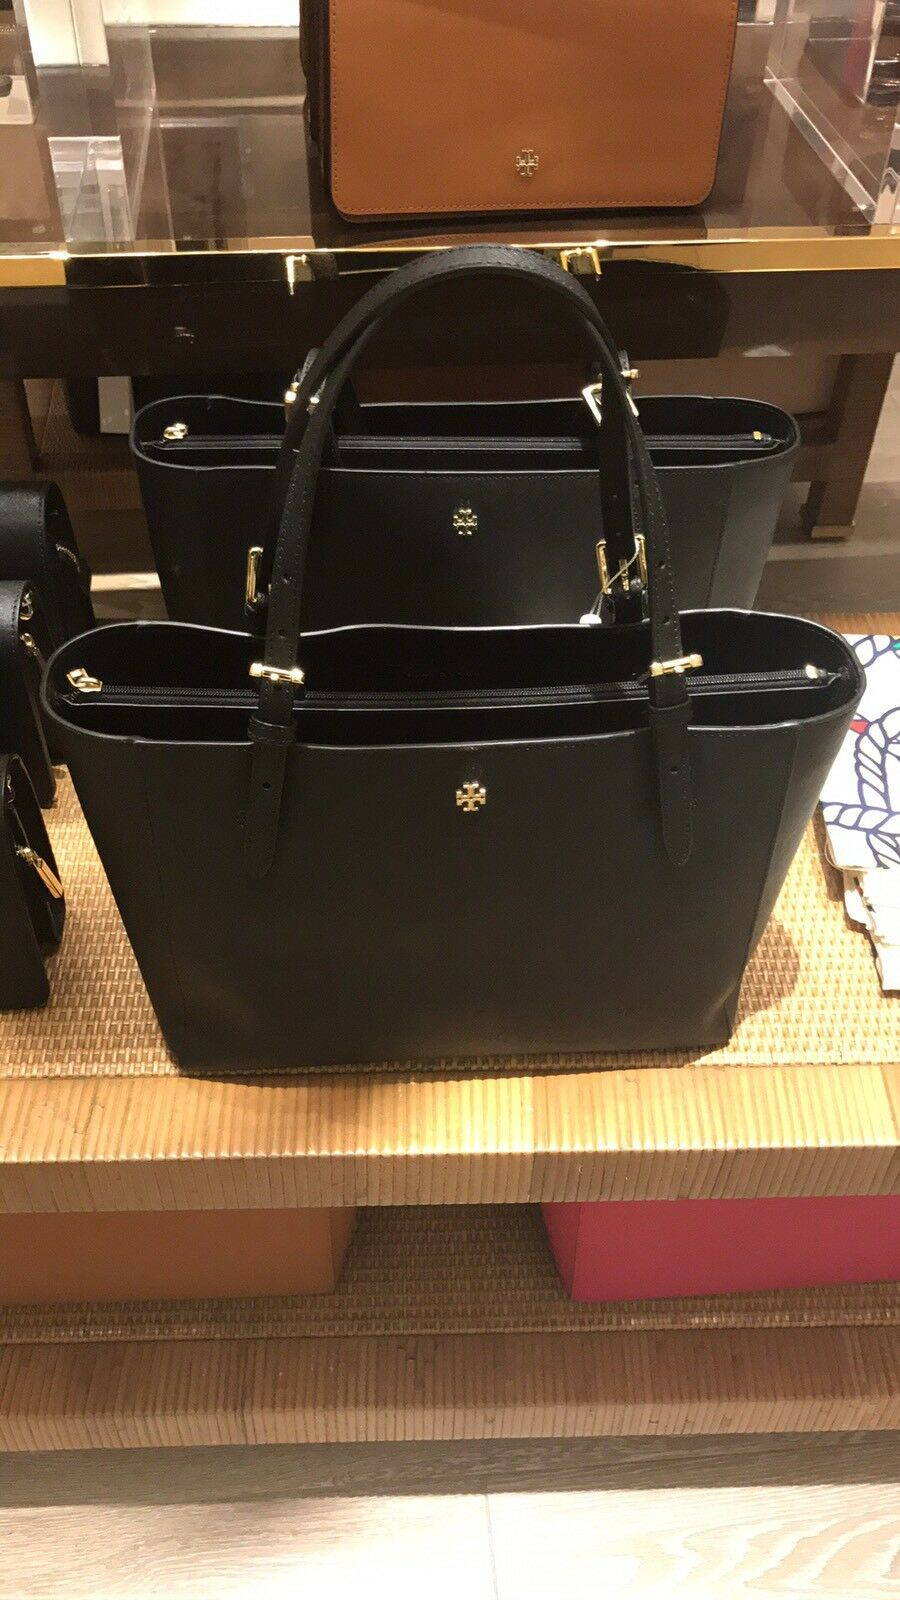 Tory Burch York Small Black Authentic Emerson Buckle Tote Shoulder Bag Luggage 49127 Norton Secured Powered By Verisign